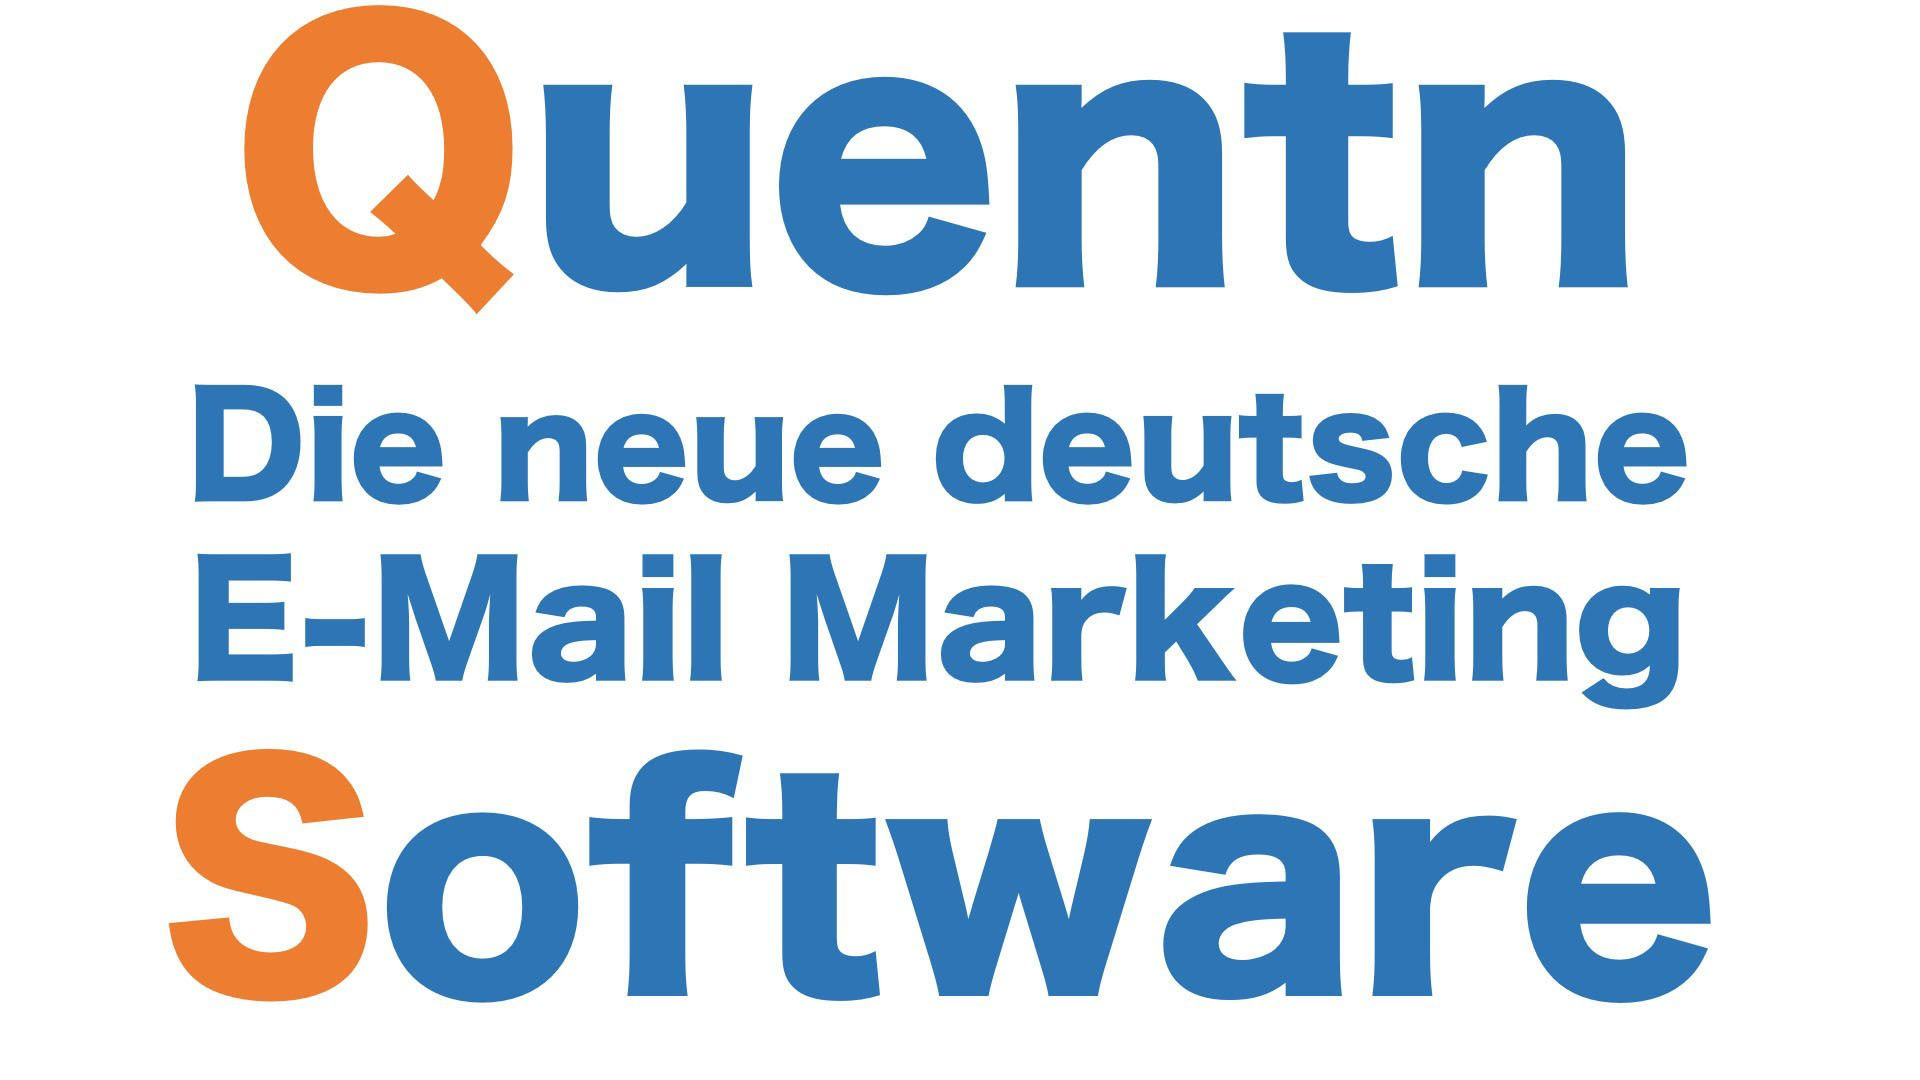 Quentn Email Marketing Software mit Webinar